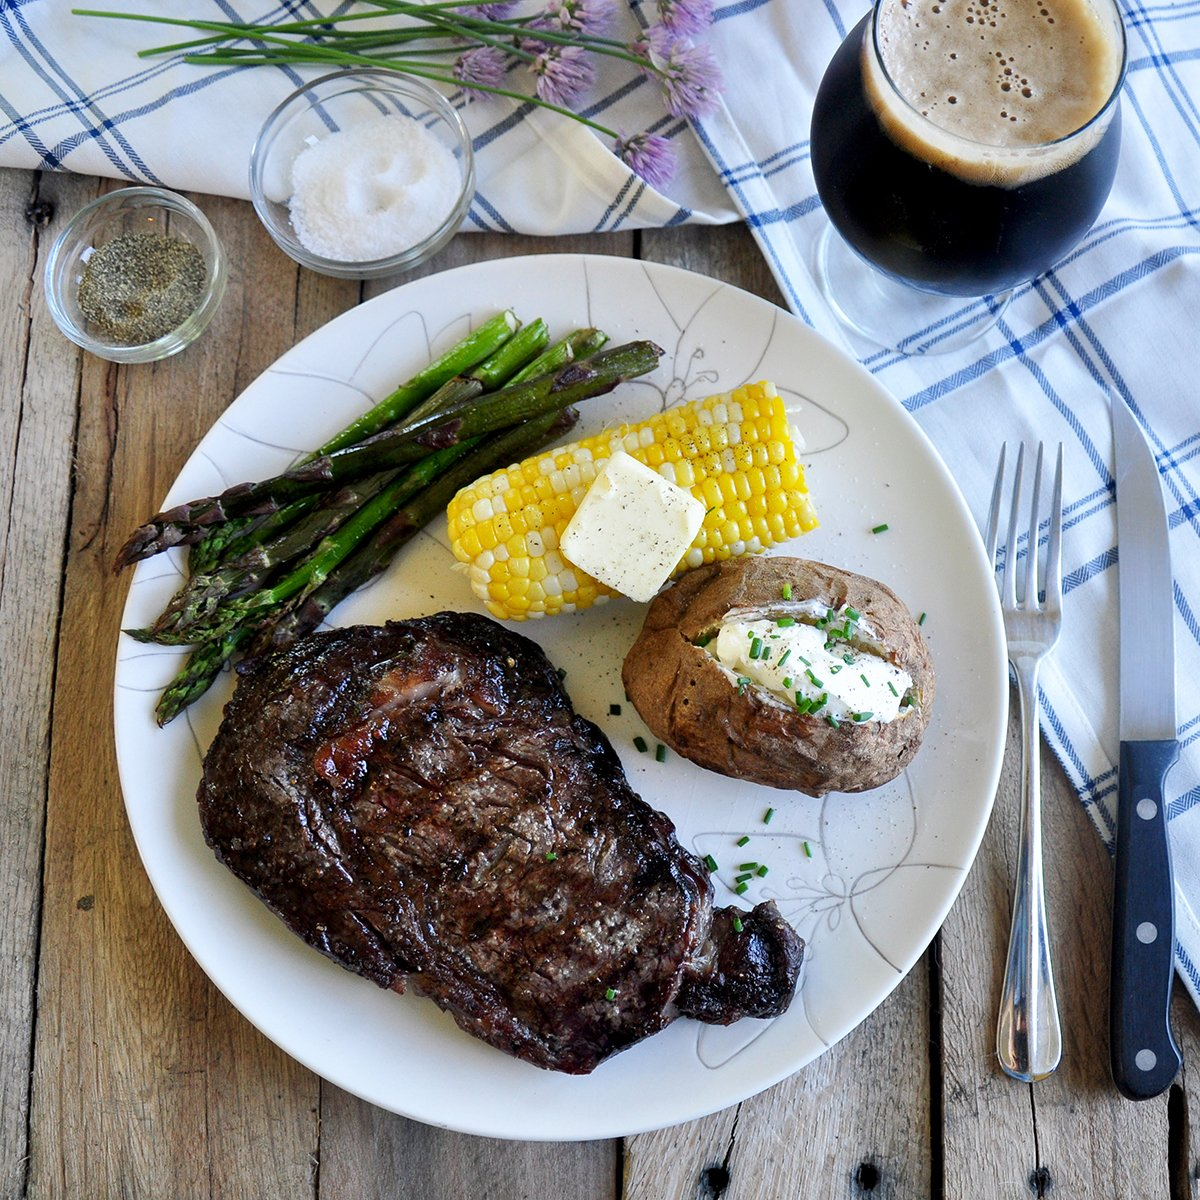 Overhead view of Ribeye Steak on a plate with a corn cob, baked potato, asparagus, and a Russian Imperial Stout